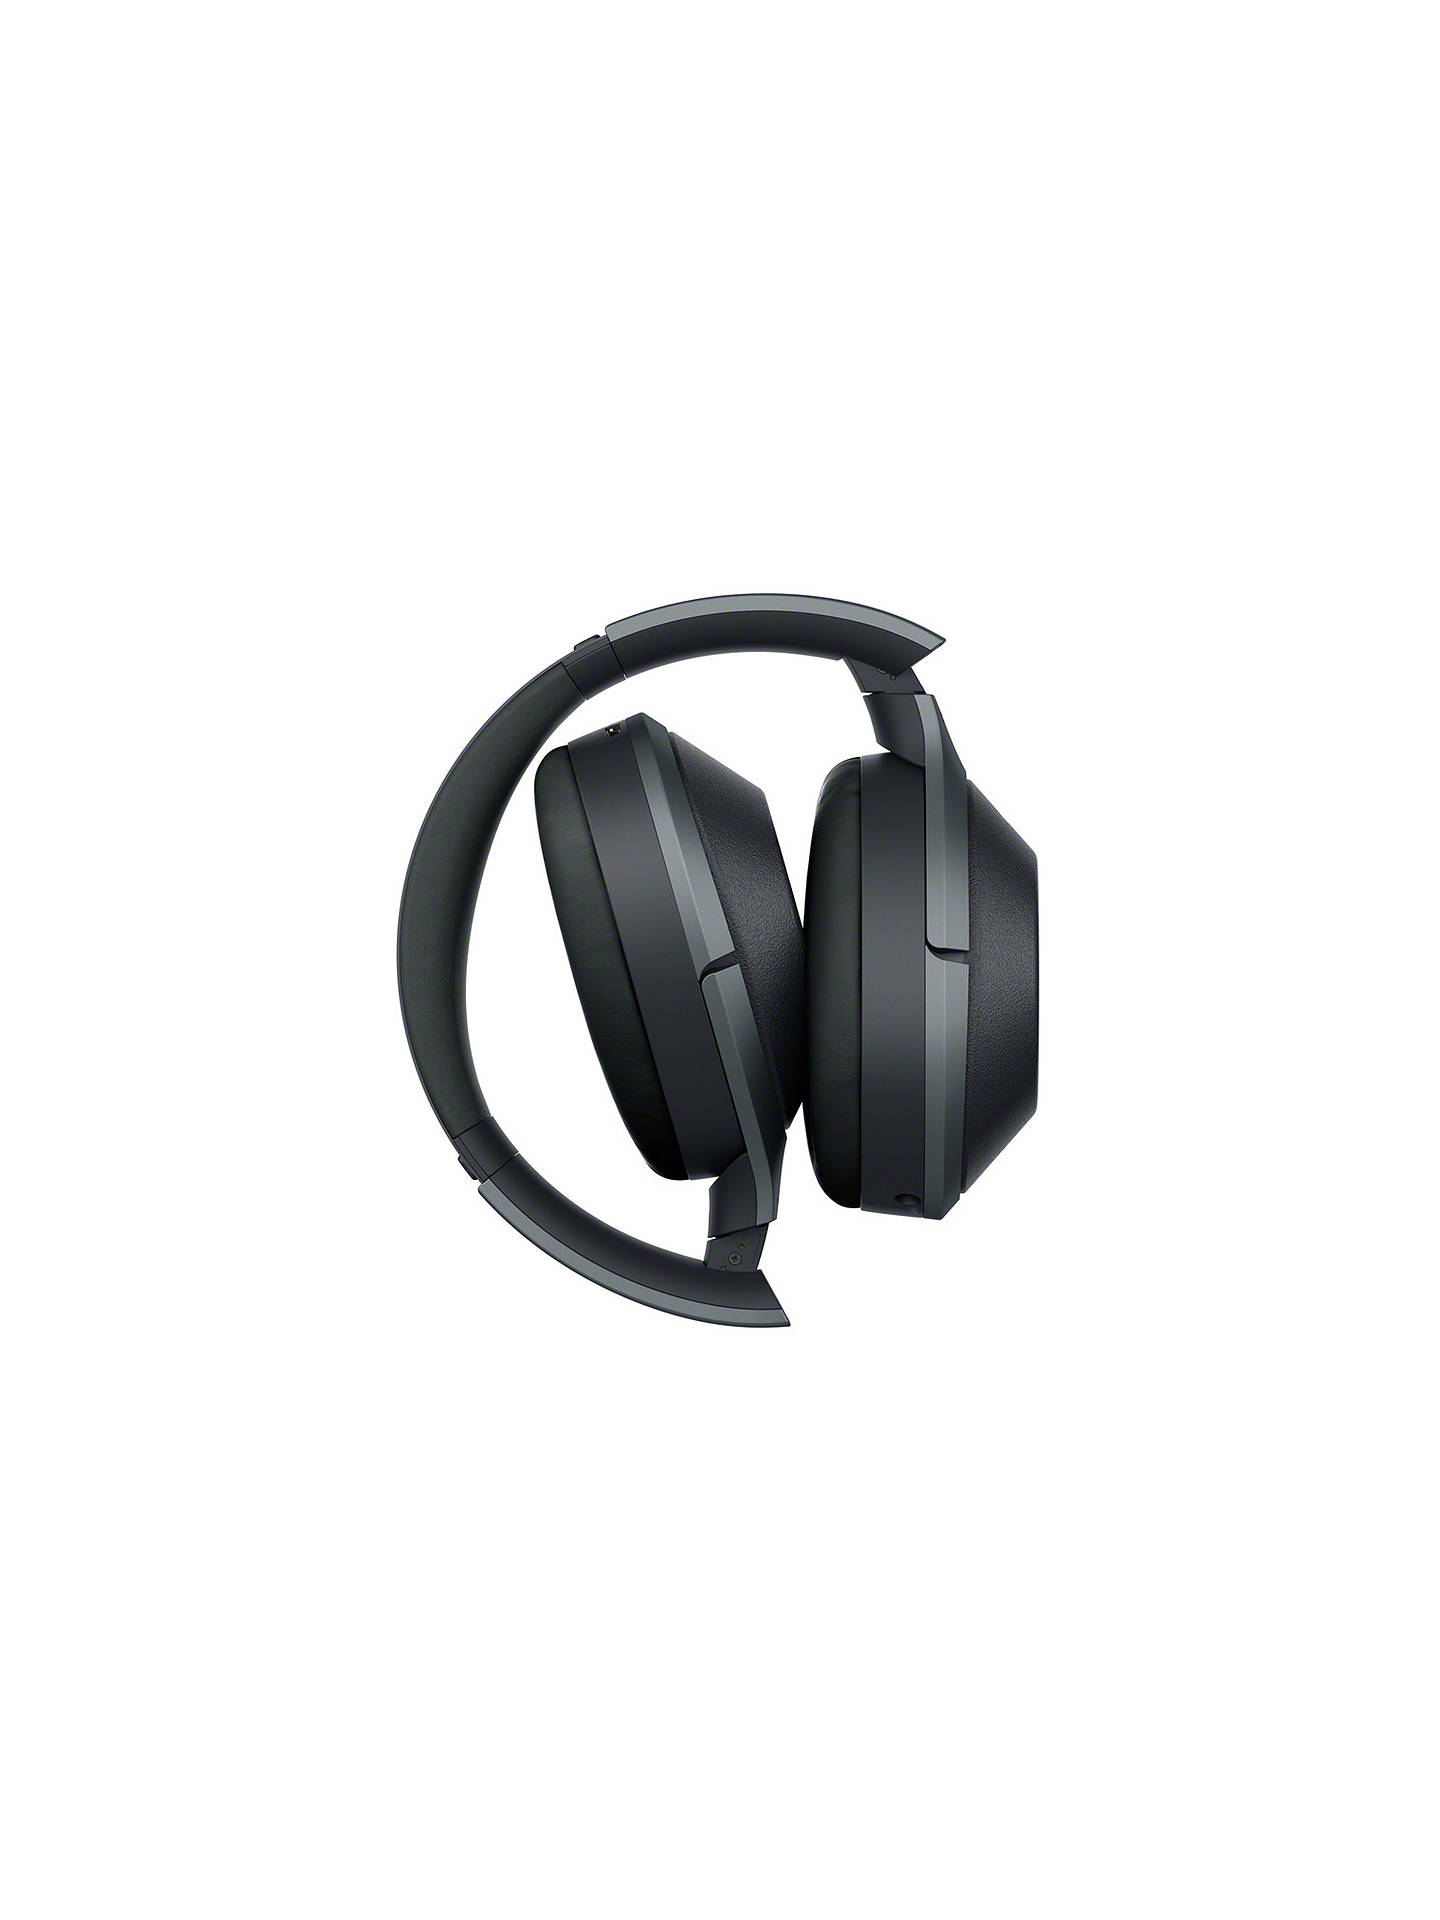 Buy Sony WH-1000XM2 Noise Cancelling Wireless Bluetooth NFC High Resolution Audio Over-Ear Headphones with Mic/Remote, Black Online at johnlewis.com